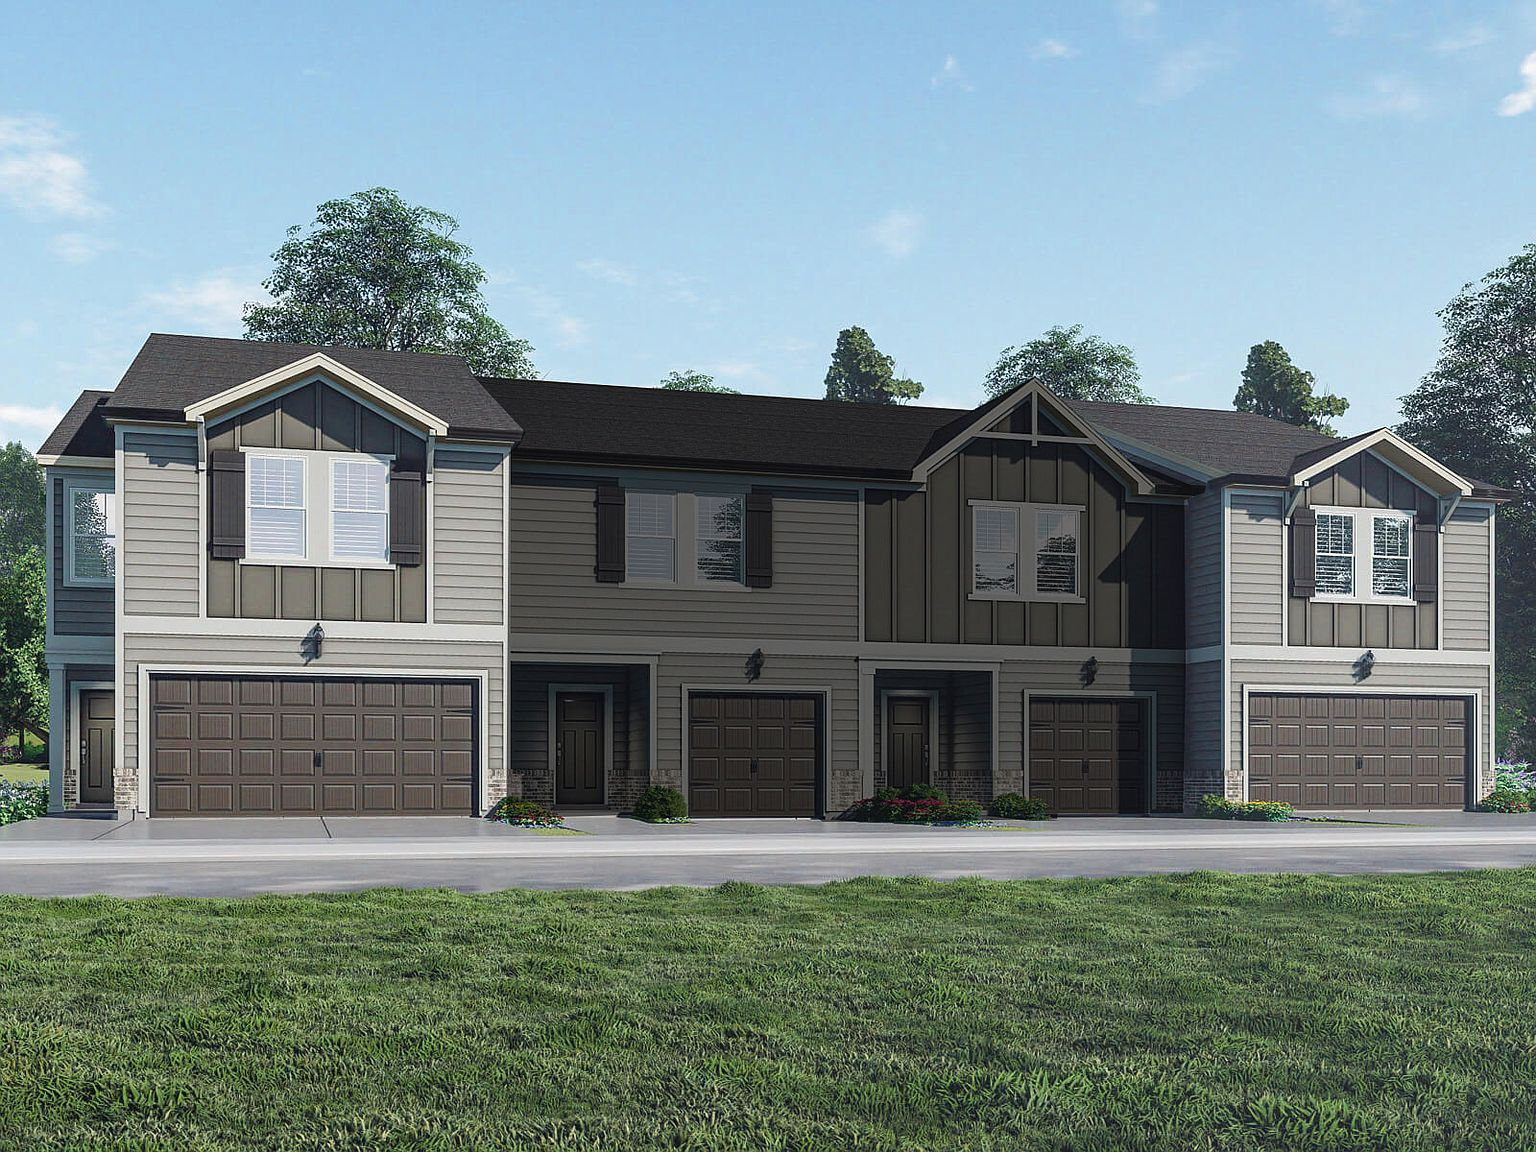 West End Station Townhomes Lebanon TN